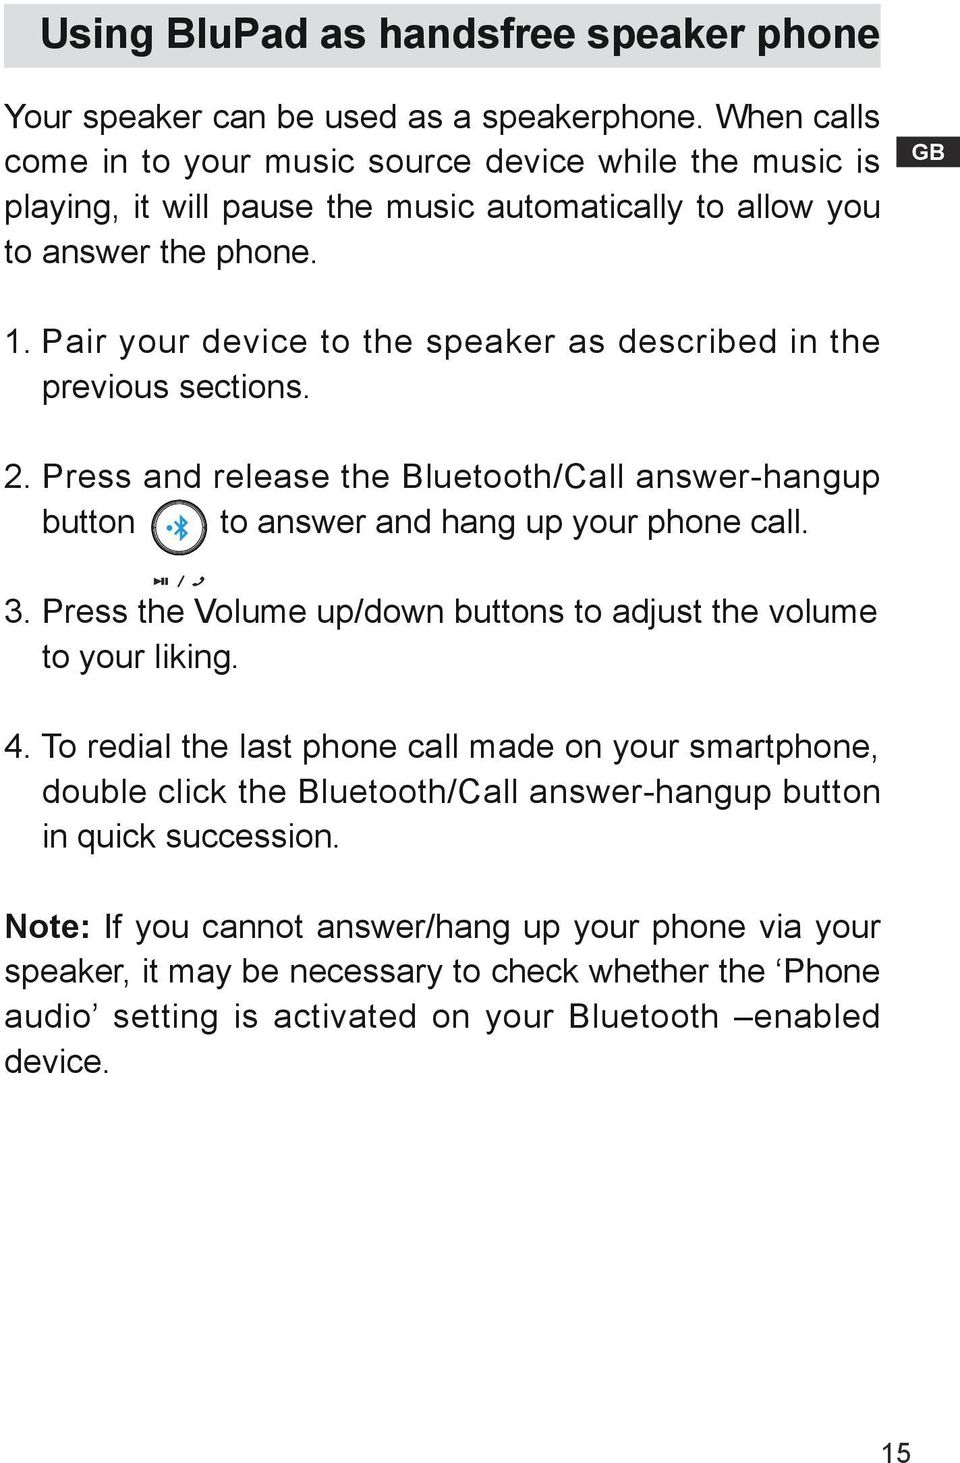 Pair your device to the speaker as described in the previous sections. 2. Press and release the Bluetooth/Call answer-hangup button to answer and hang up your phone call. 3.